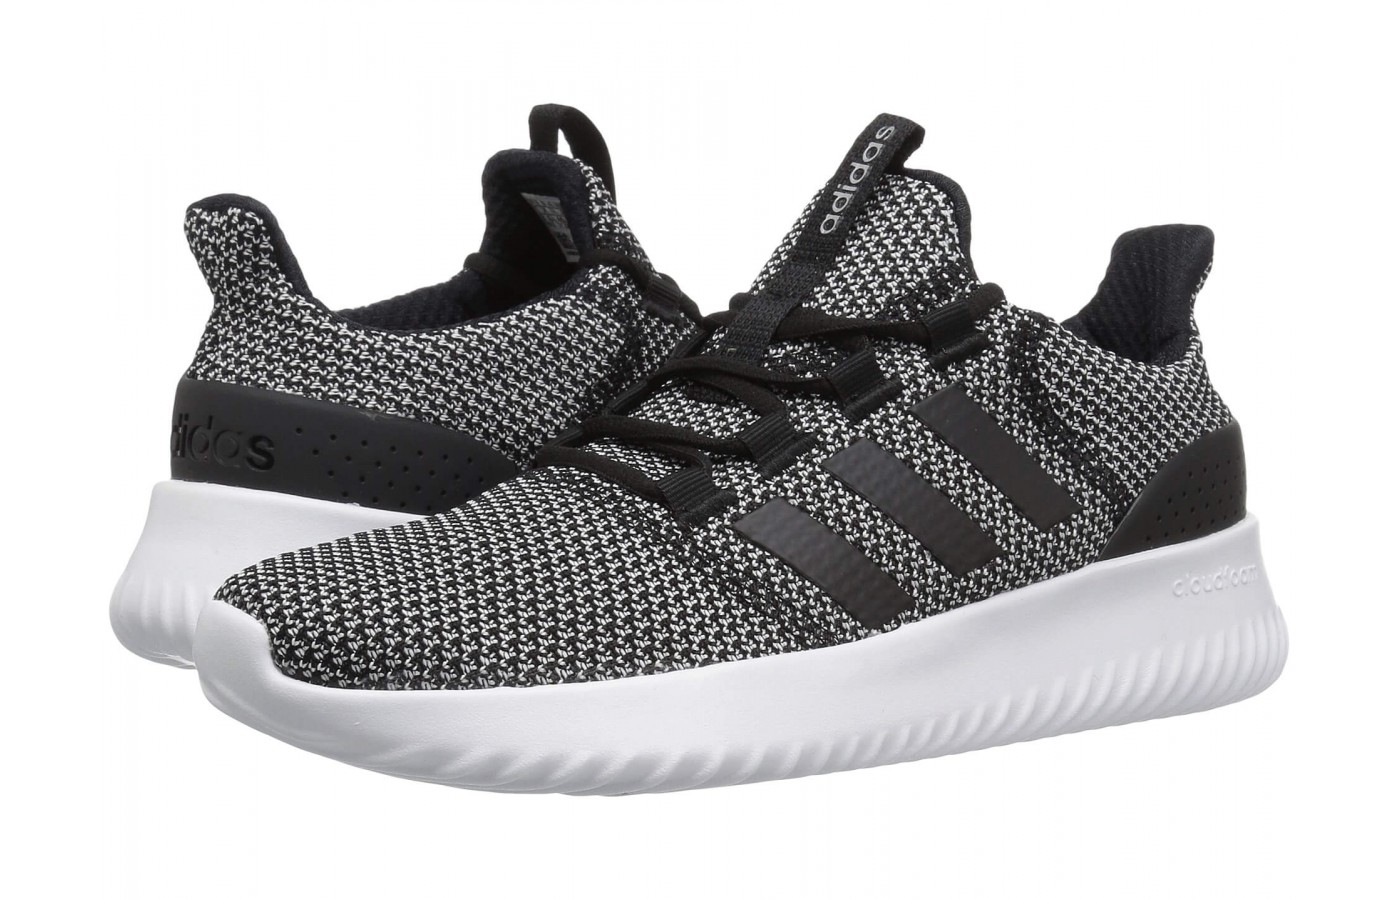 prix le plus bas 0168d 1af61 Adidas Cloudfoam Ultimate Reviewed in 2019 | WalkJogRun